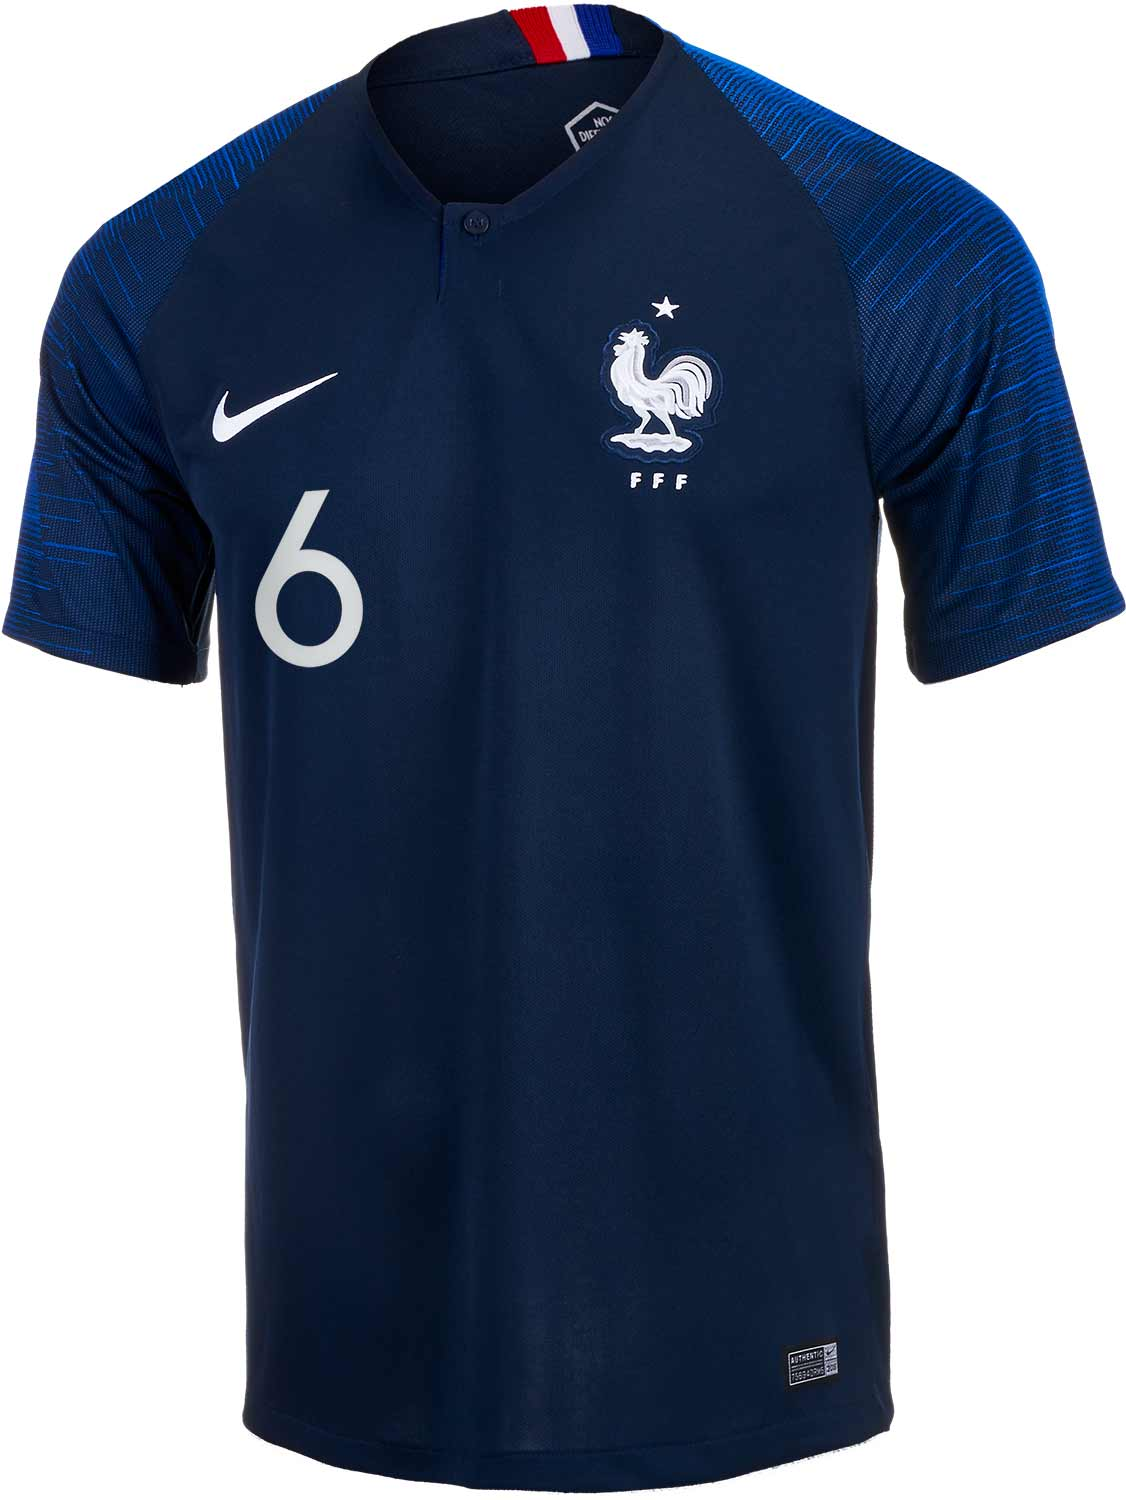 pretty nice 1b93e fff72 2018/19 Nike Paul Pogba France Home Jersey - SoccerPro